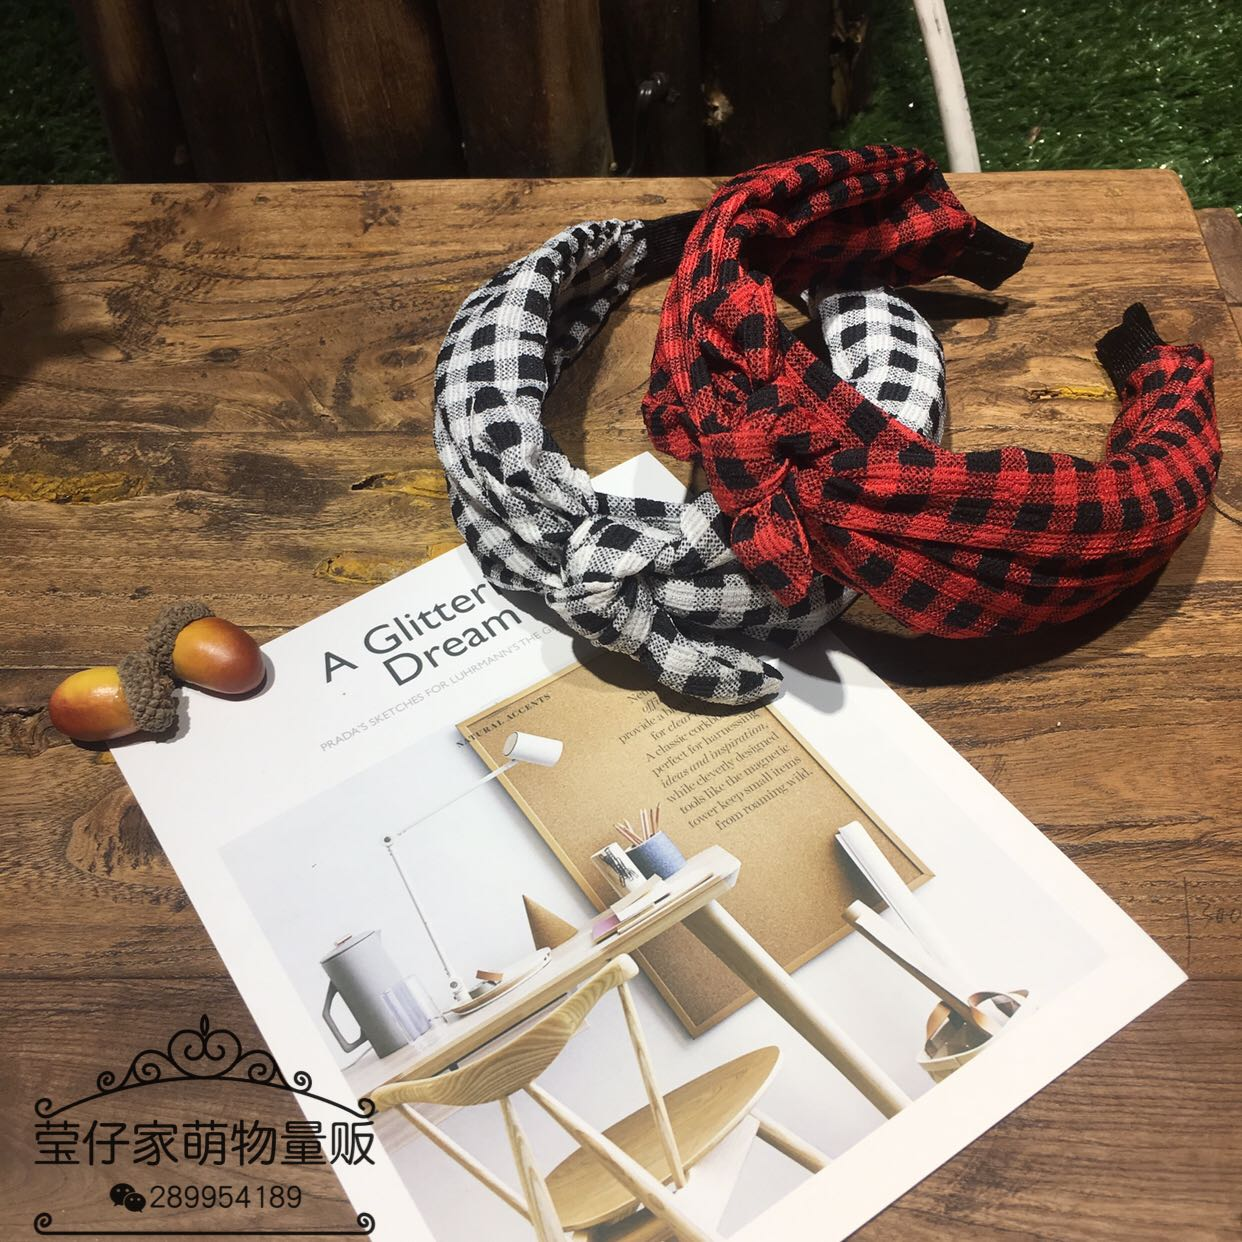 Han Guodong gates new temperament small squares all-match broadside rabbit ears headband hair accessories hairpin